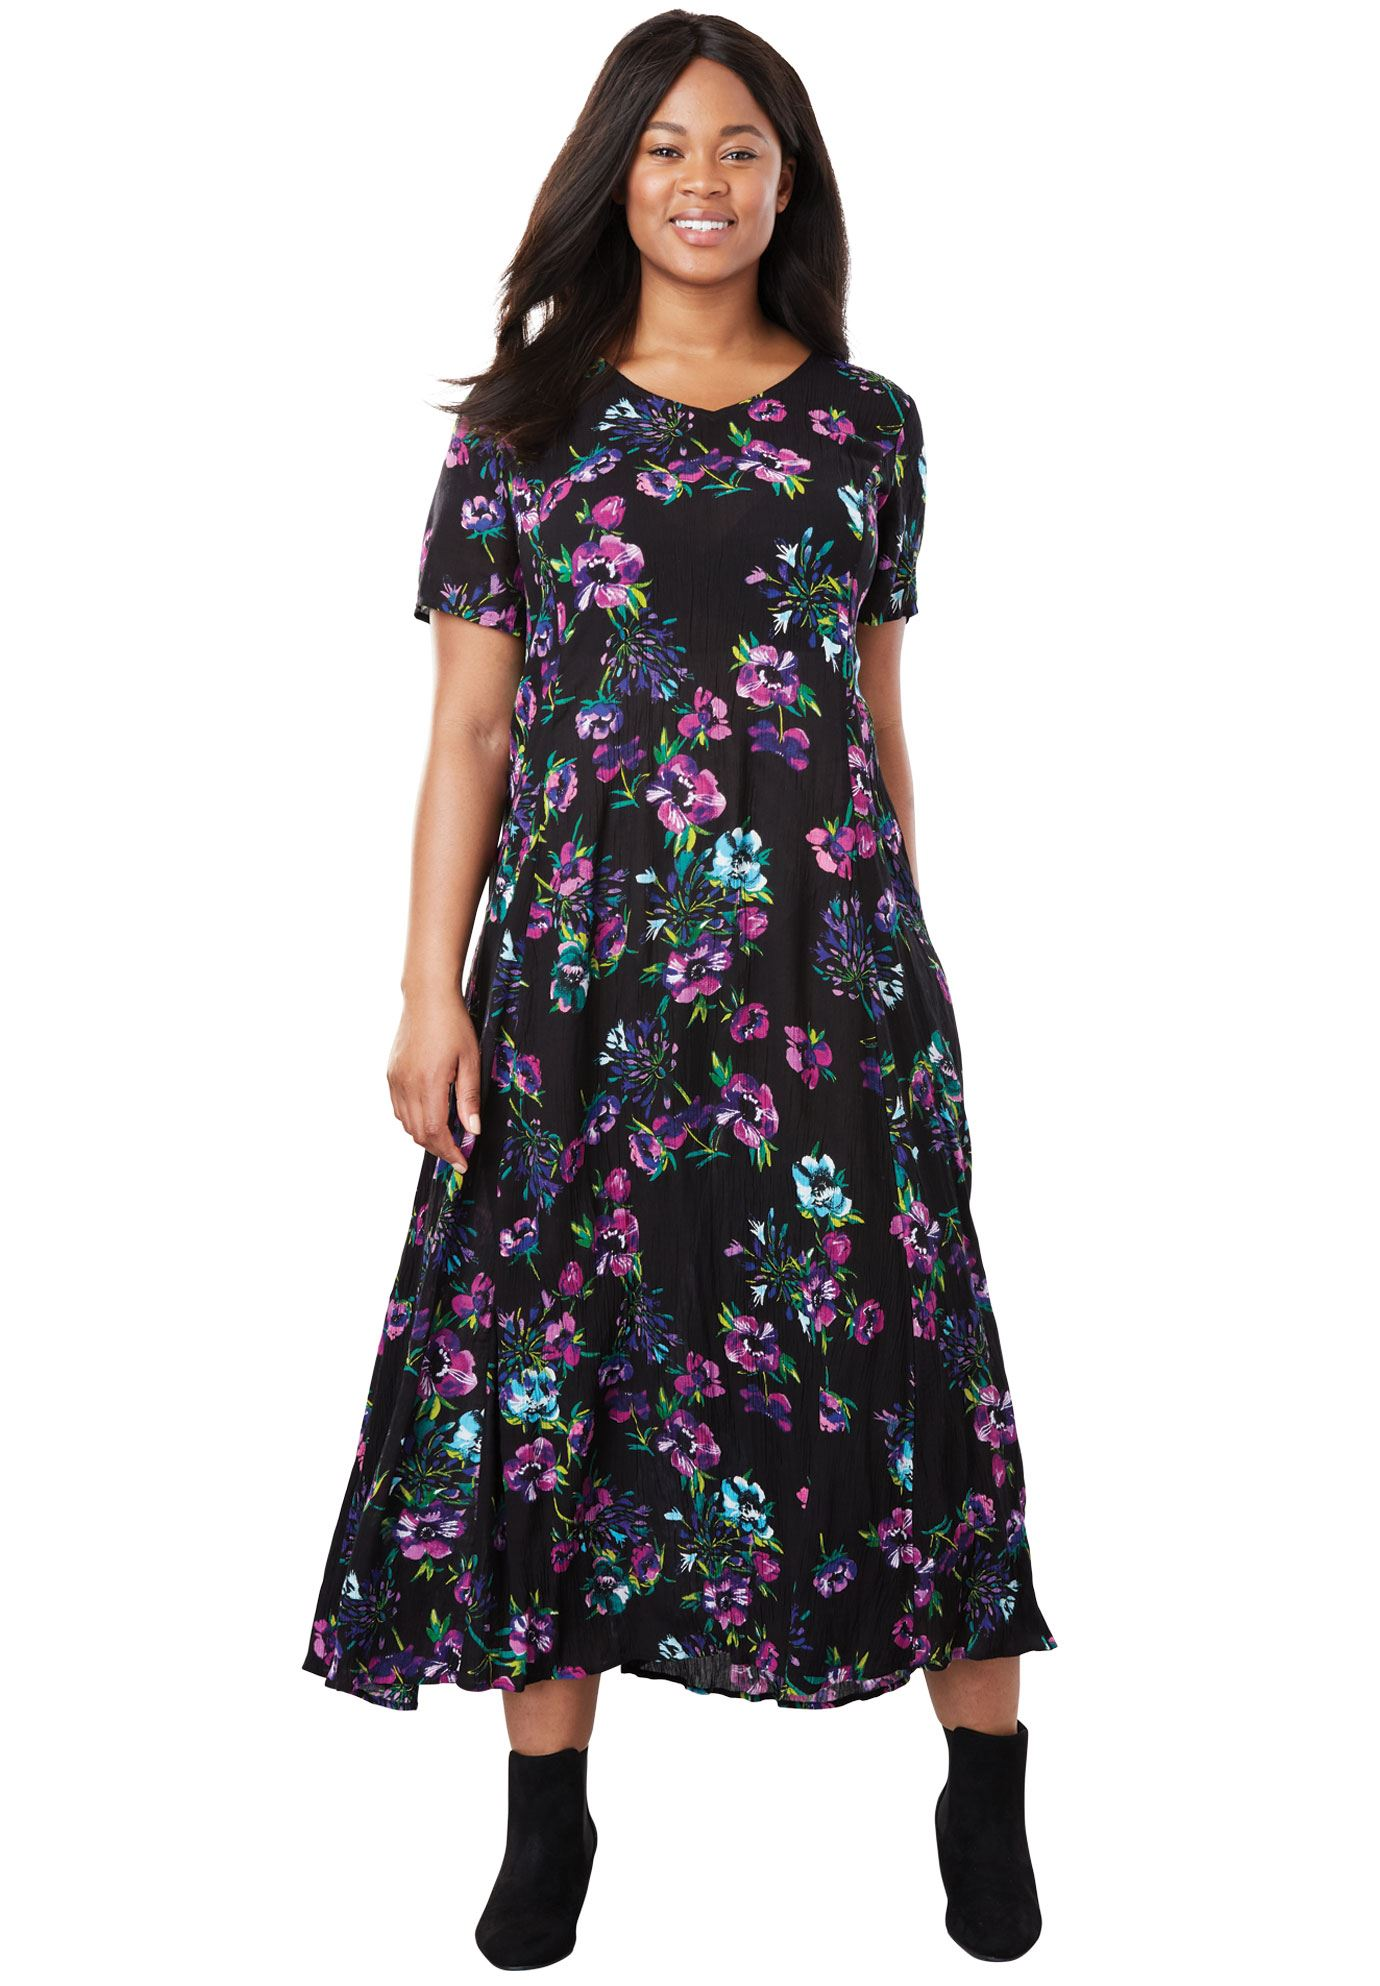 Woman Within - Woman Within Plus Size Petite Crinkle Dress - Walmart.com